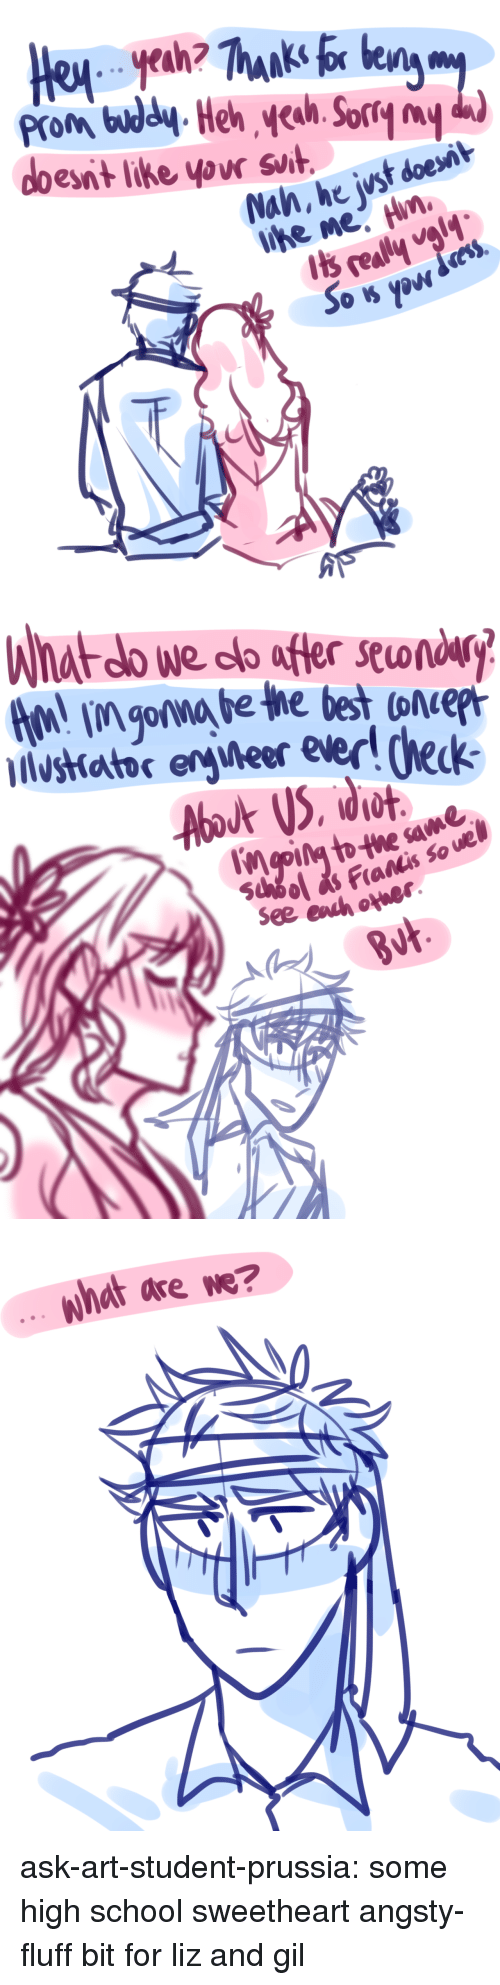 School, Target, and Tumblr: Prom bdl-Heh h.orryy  esnt like yovr svit.  Nah, he wst doesit   What do we co afer seondry  lvstiattor eryweer ever! heck  Fiatis so ue  se   what are we? ask-art-student-prussia:  some high school sweetheart angsty-fluff bit for liz and gil